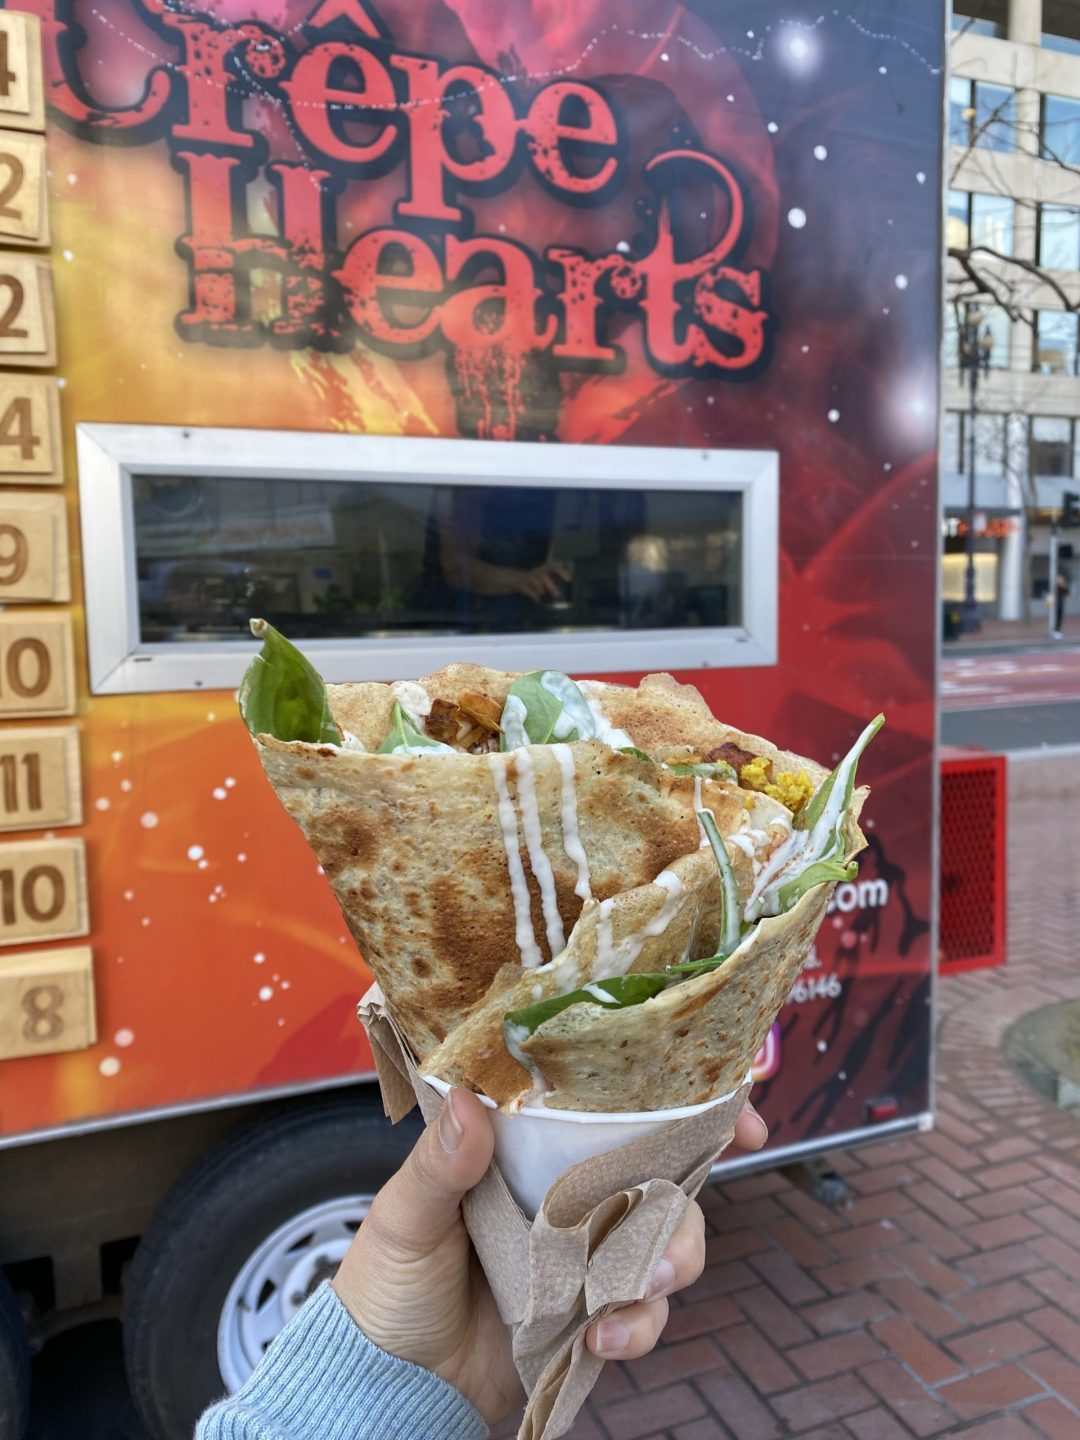 Vegan savory breakfast crêpe with Crêpe Hearts food truck in the background